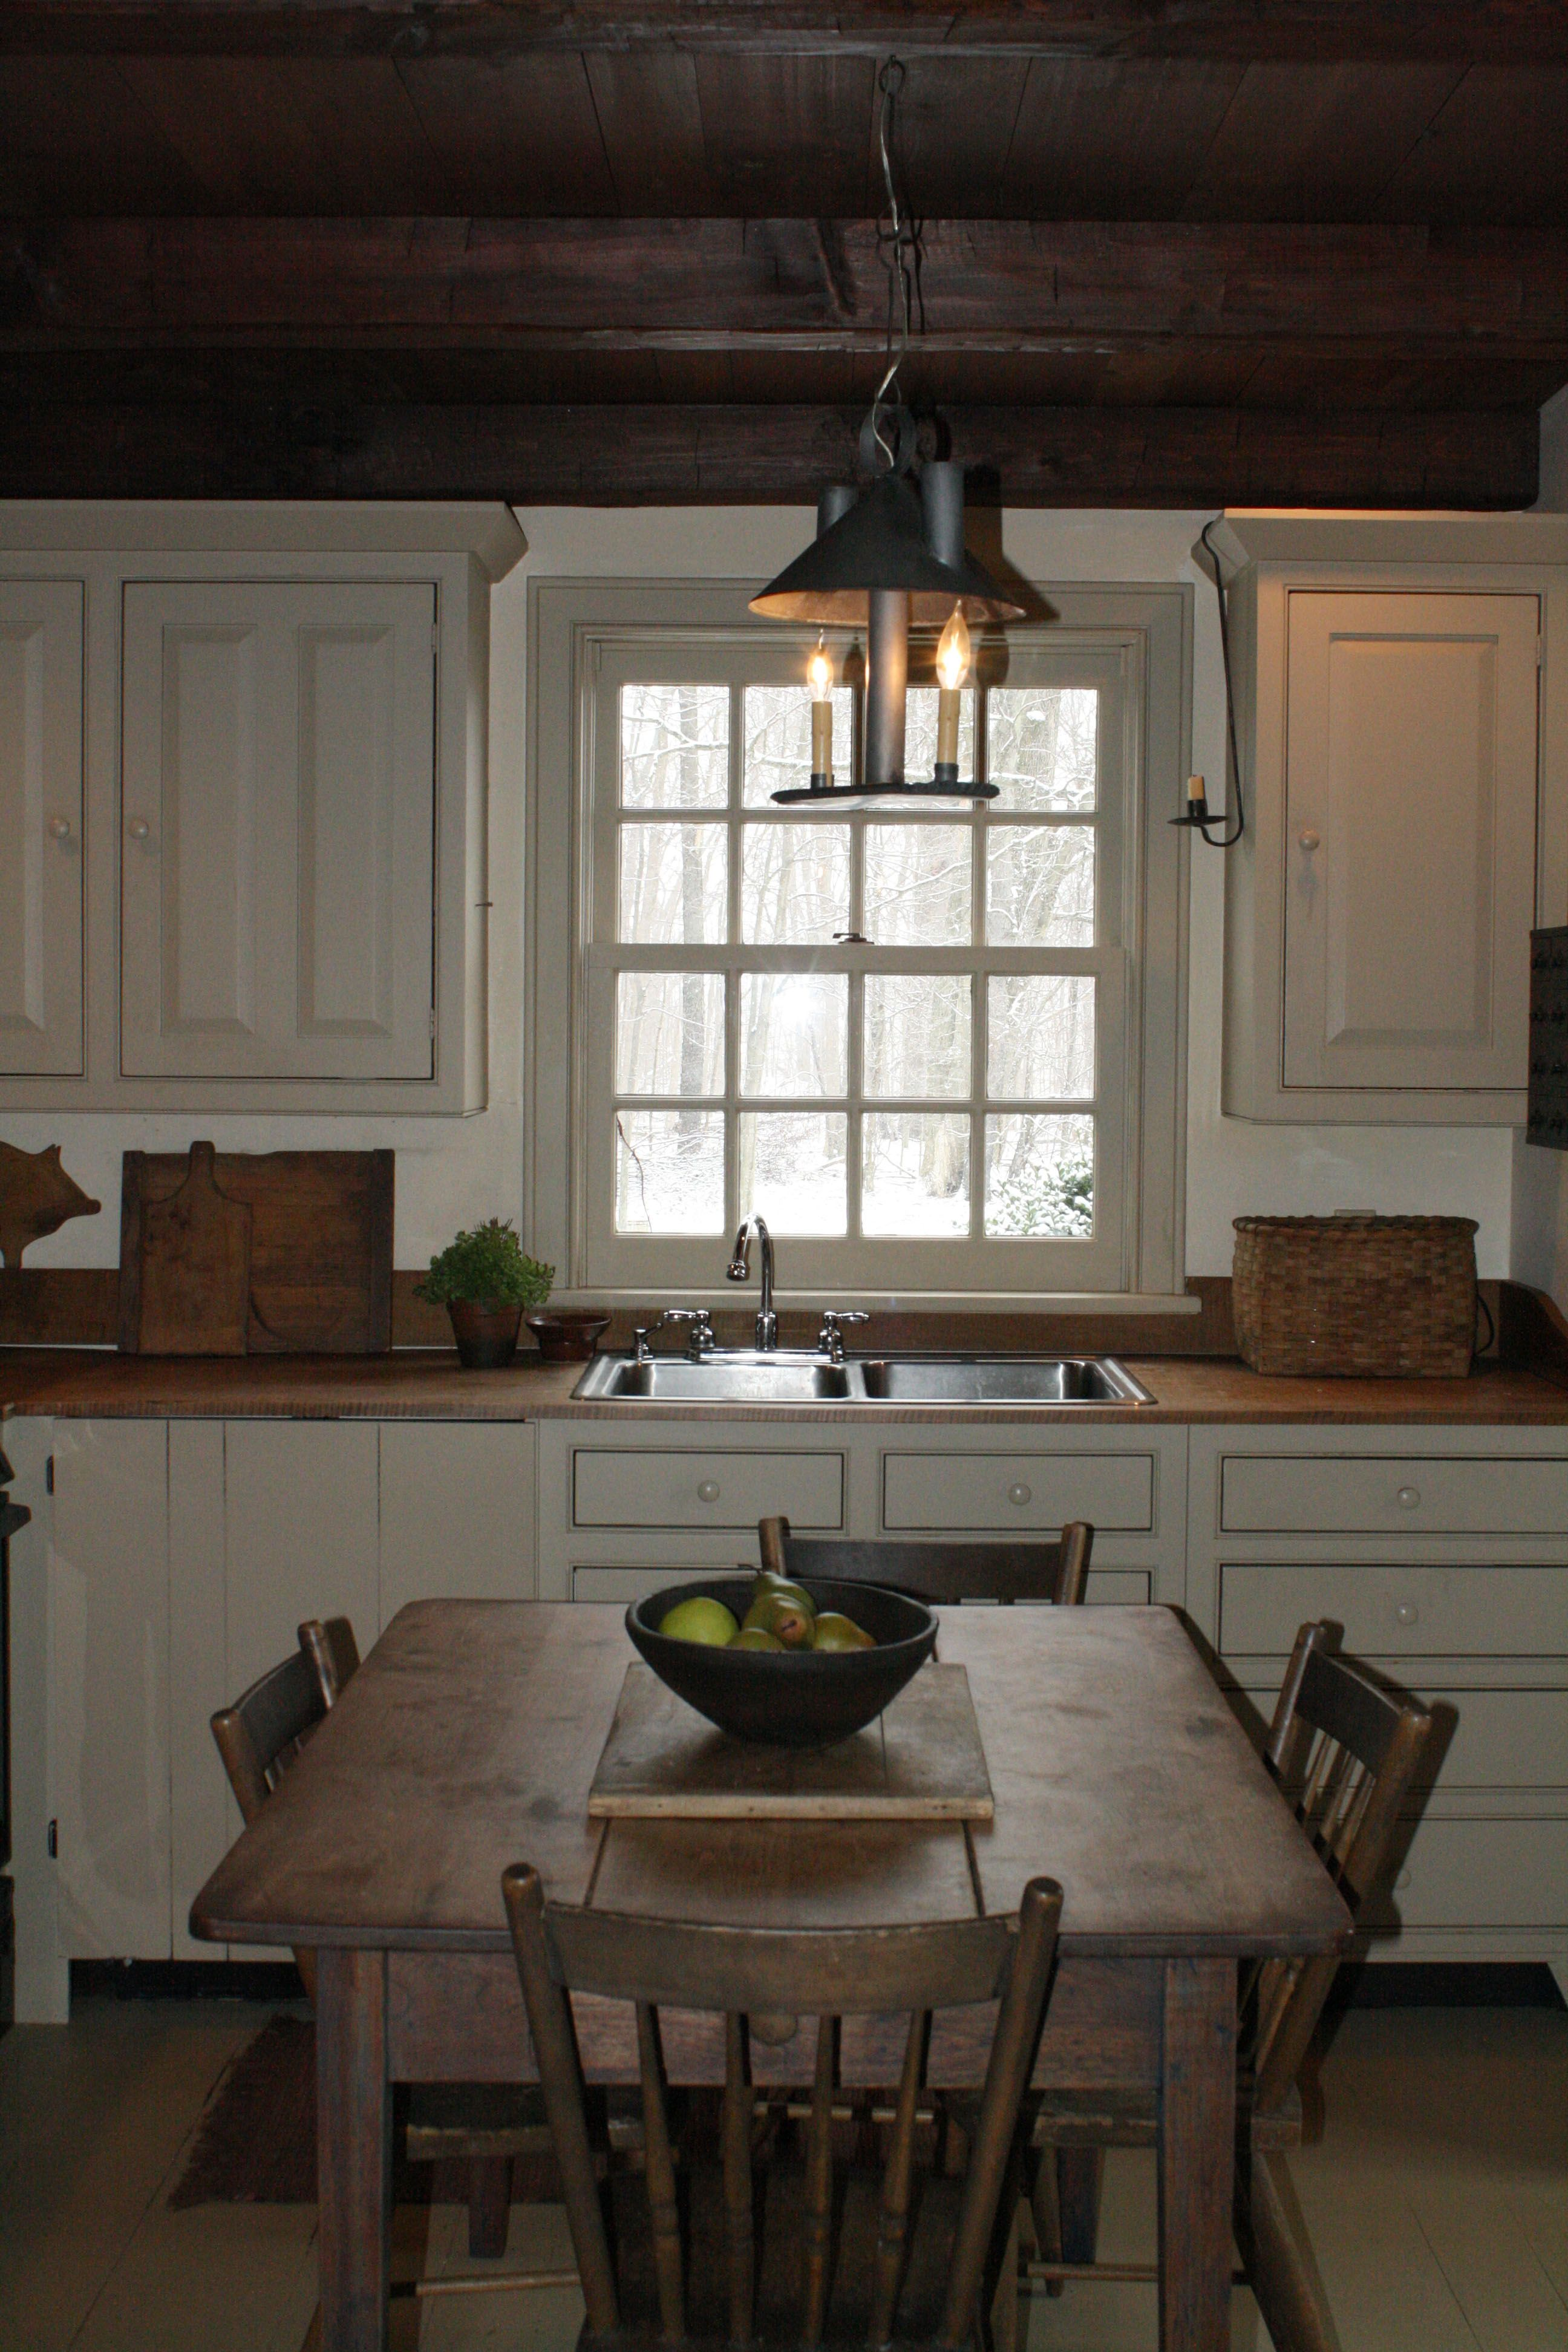 beautiful country kitchen rustic kitchen cabinets country kitchen kitchen remodel on kitchen cabinets rustic farmhouse style id=33993